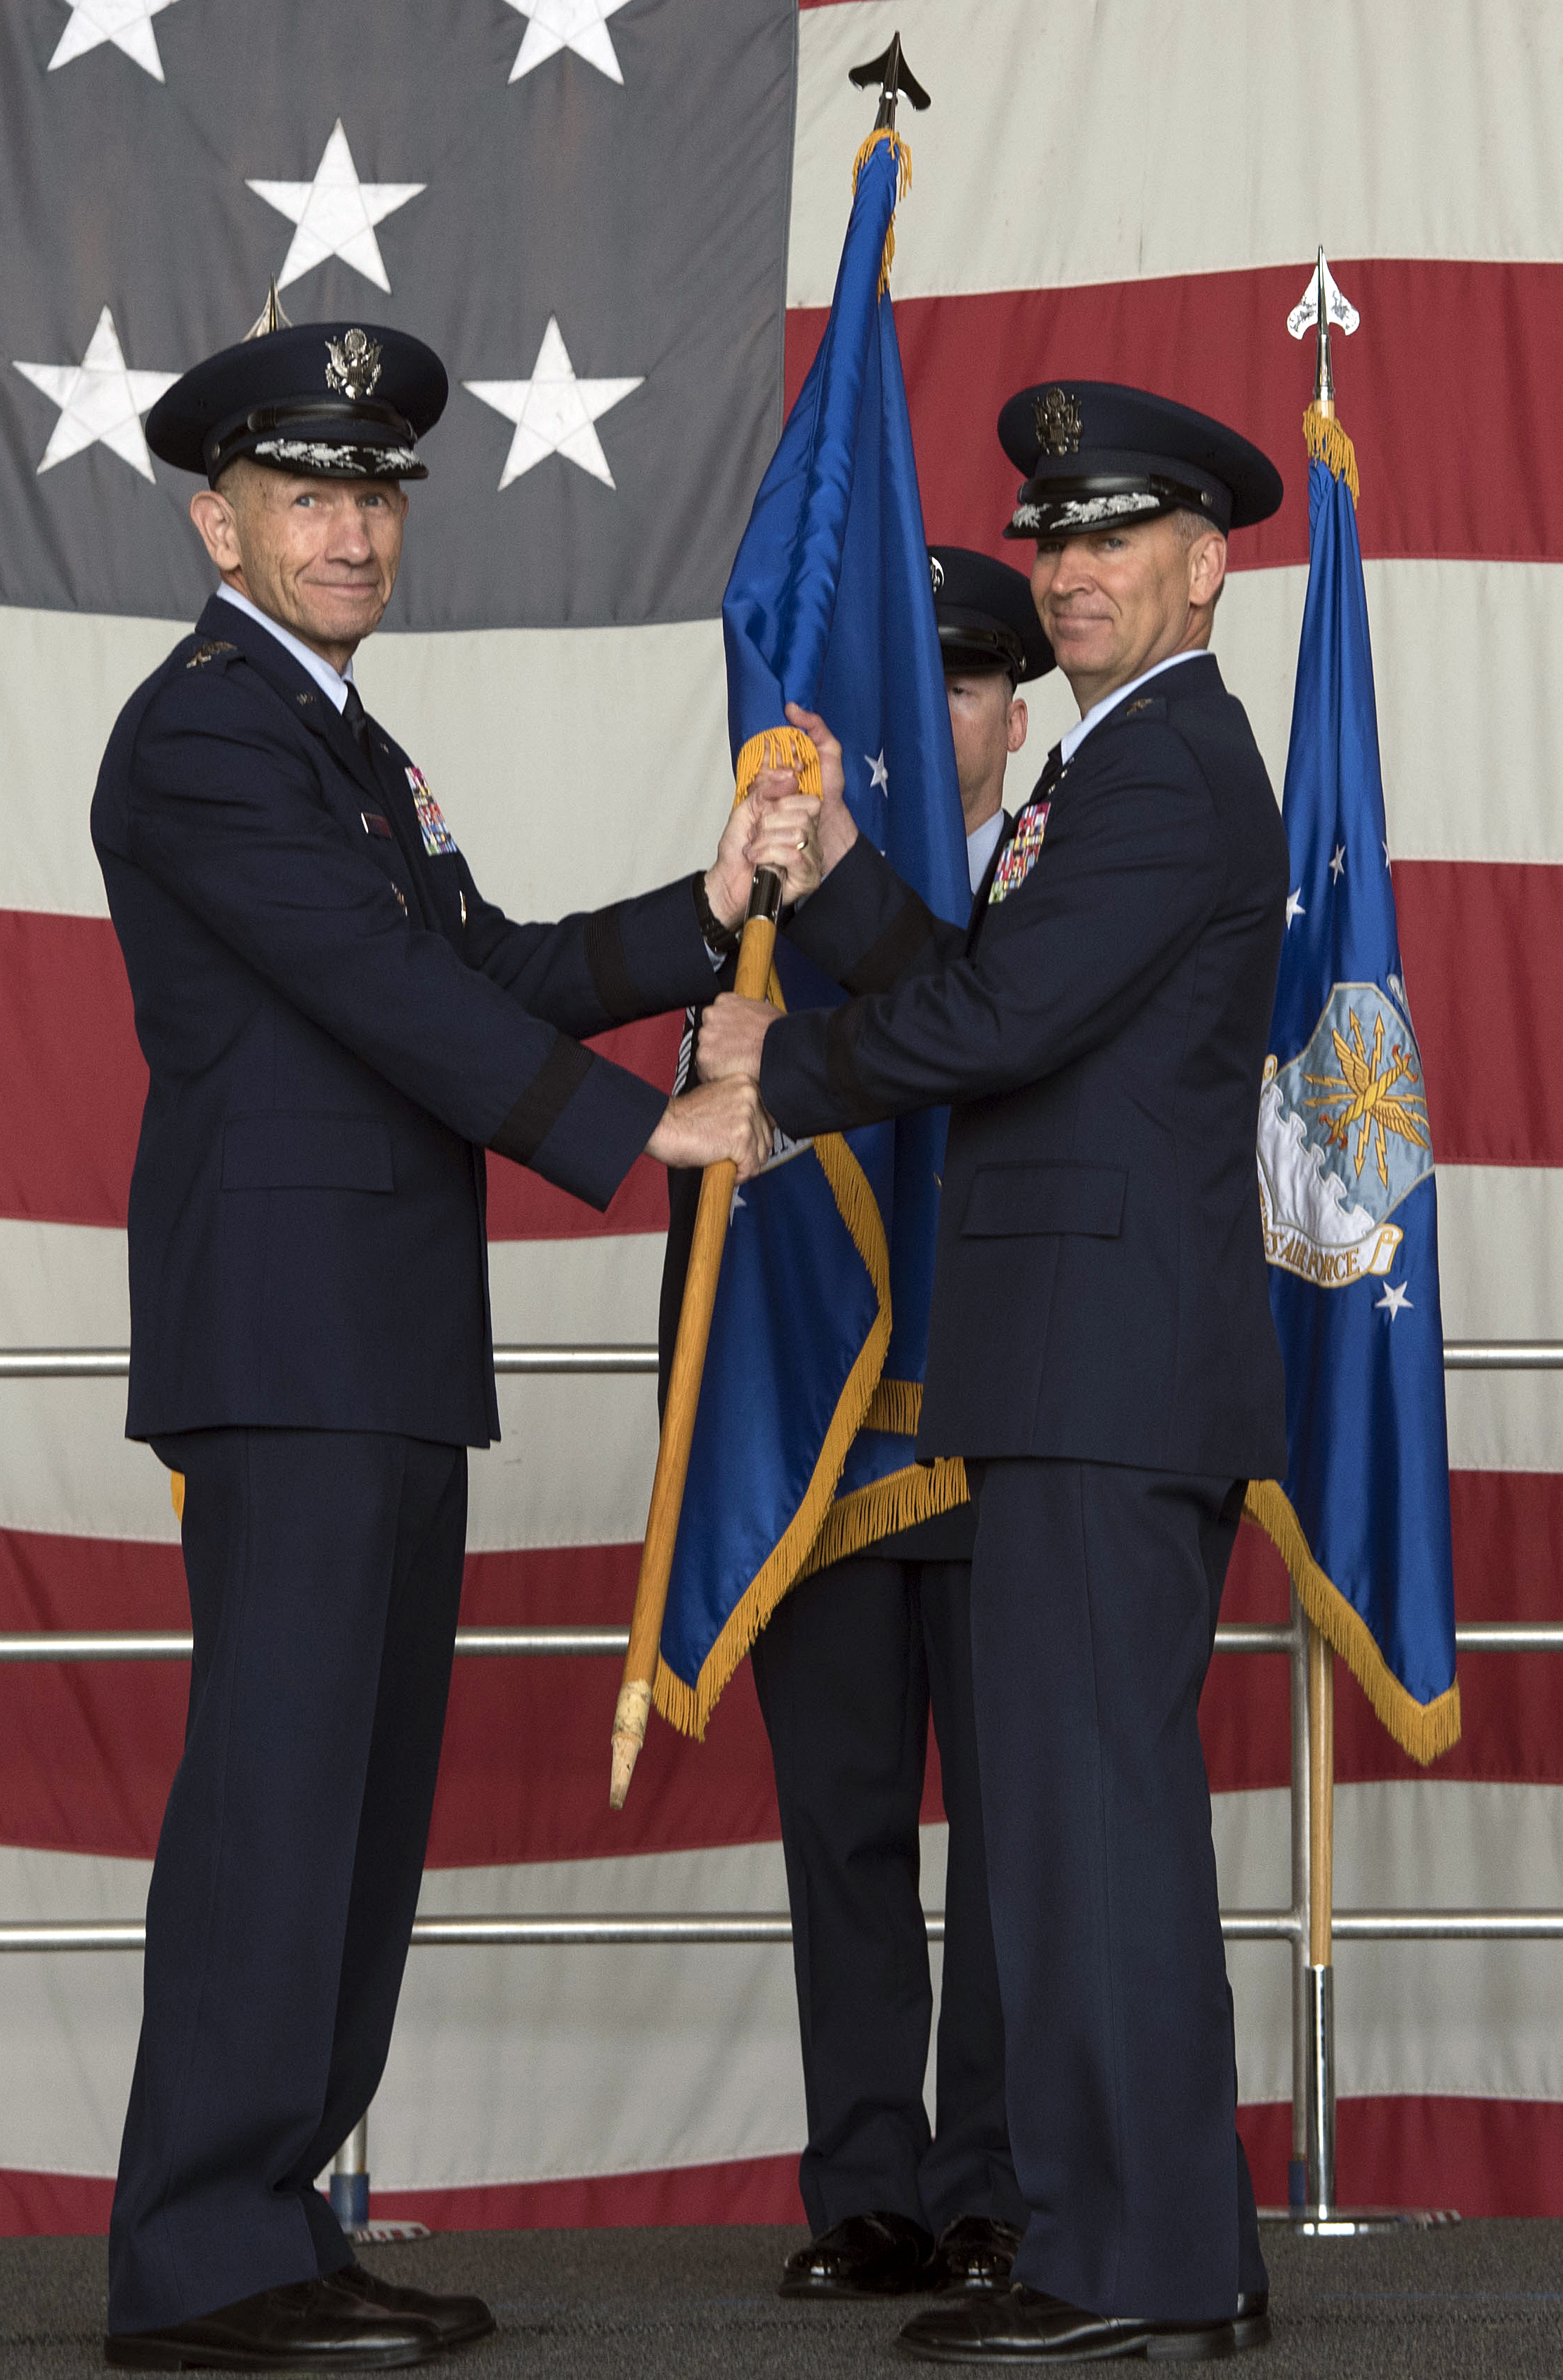 NINTH AIR FORCE CHANGE OF COMMAND HIGHLIGHTS JOINT